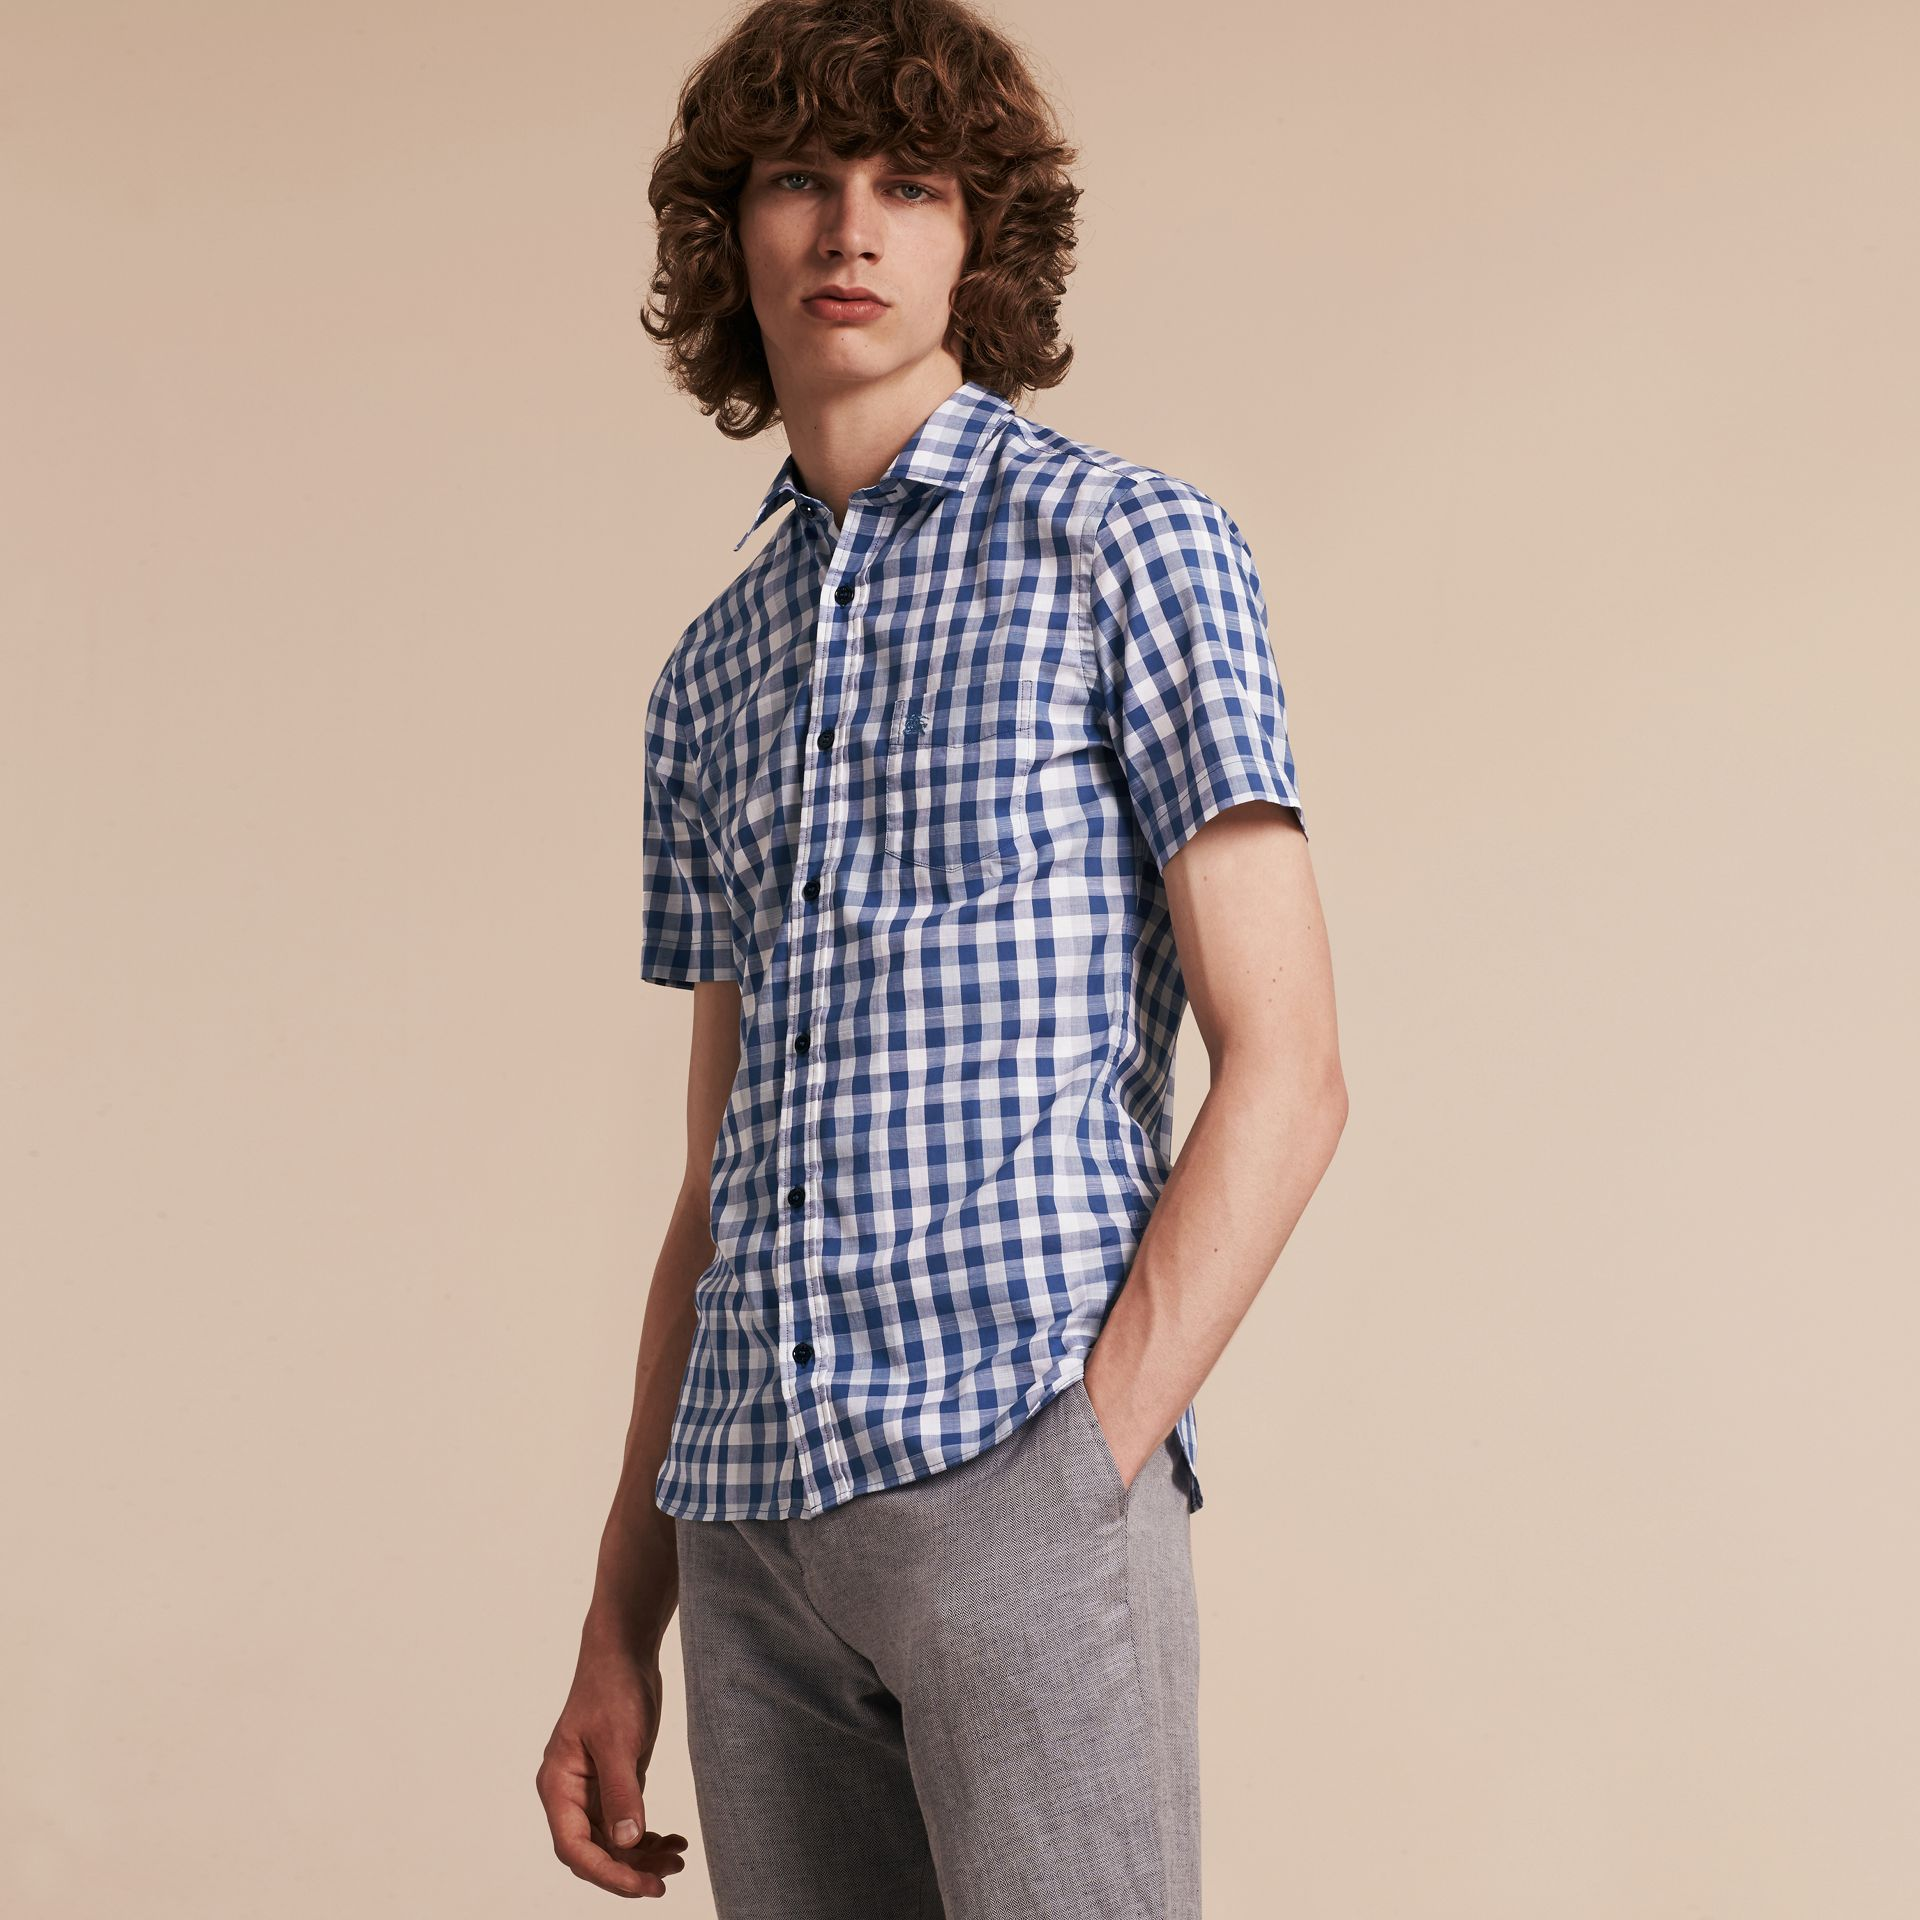 Bright steel blue Short-sleeved Gingham Cotton Shirt Bright Steel Blue - gallery image 4